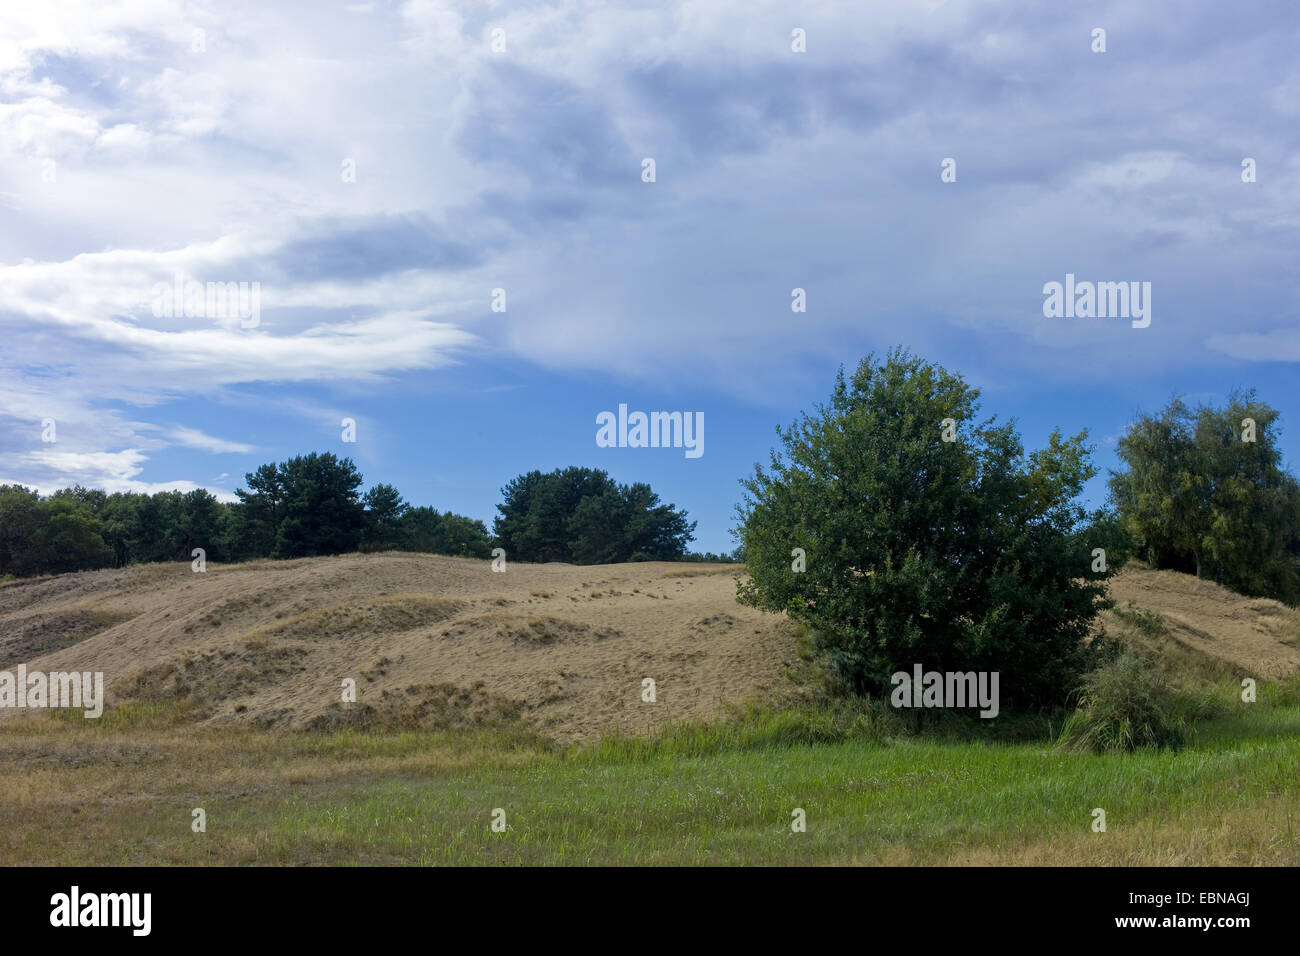 inland dunes, Germany, Mecklenburg-Western Pomerania, Altwarp - Stock Image